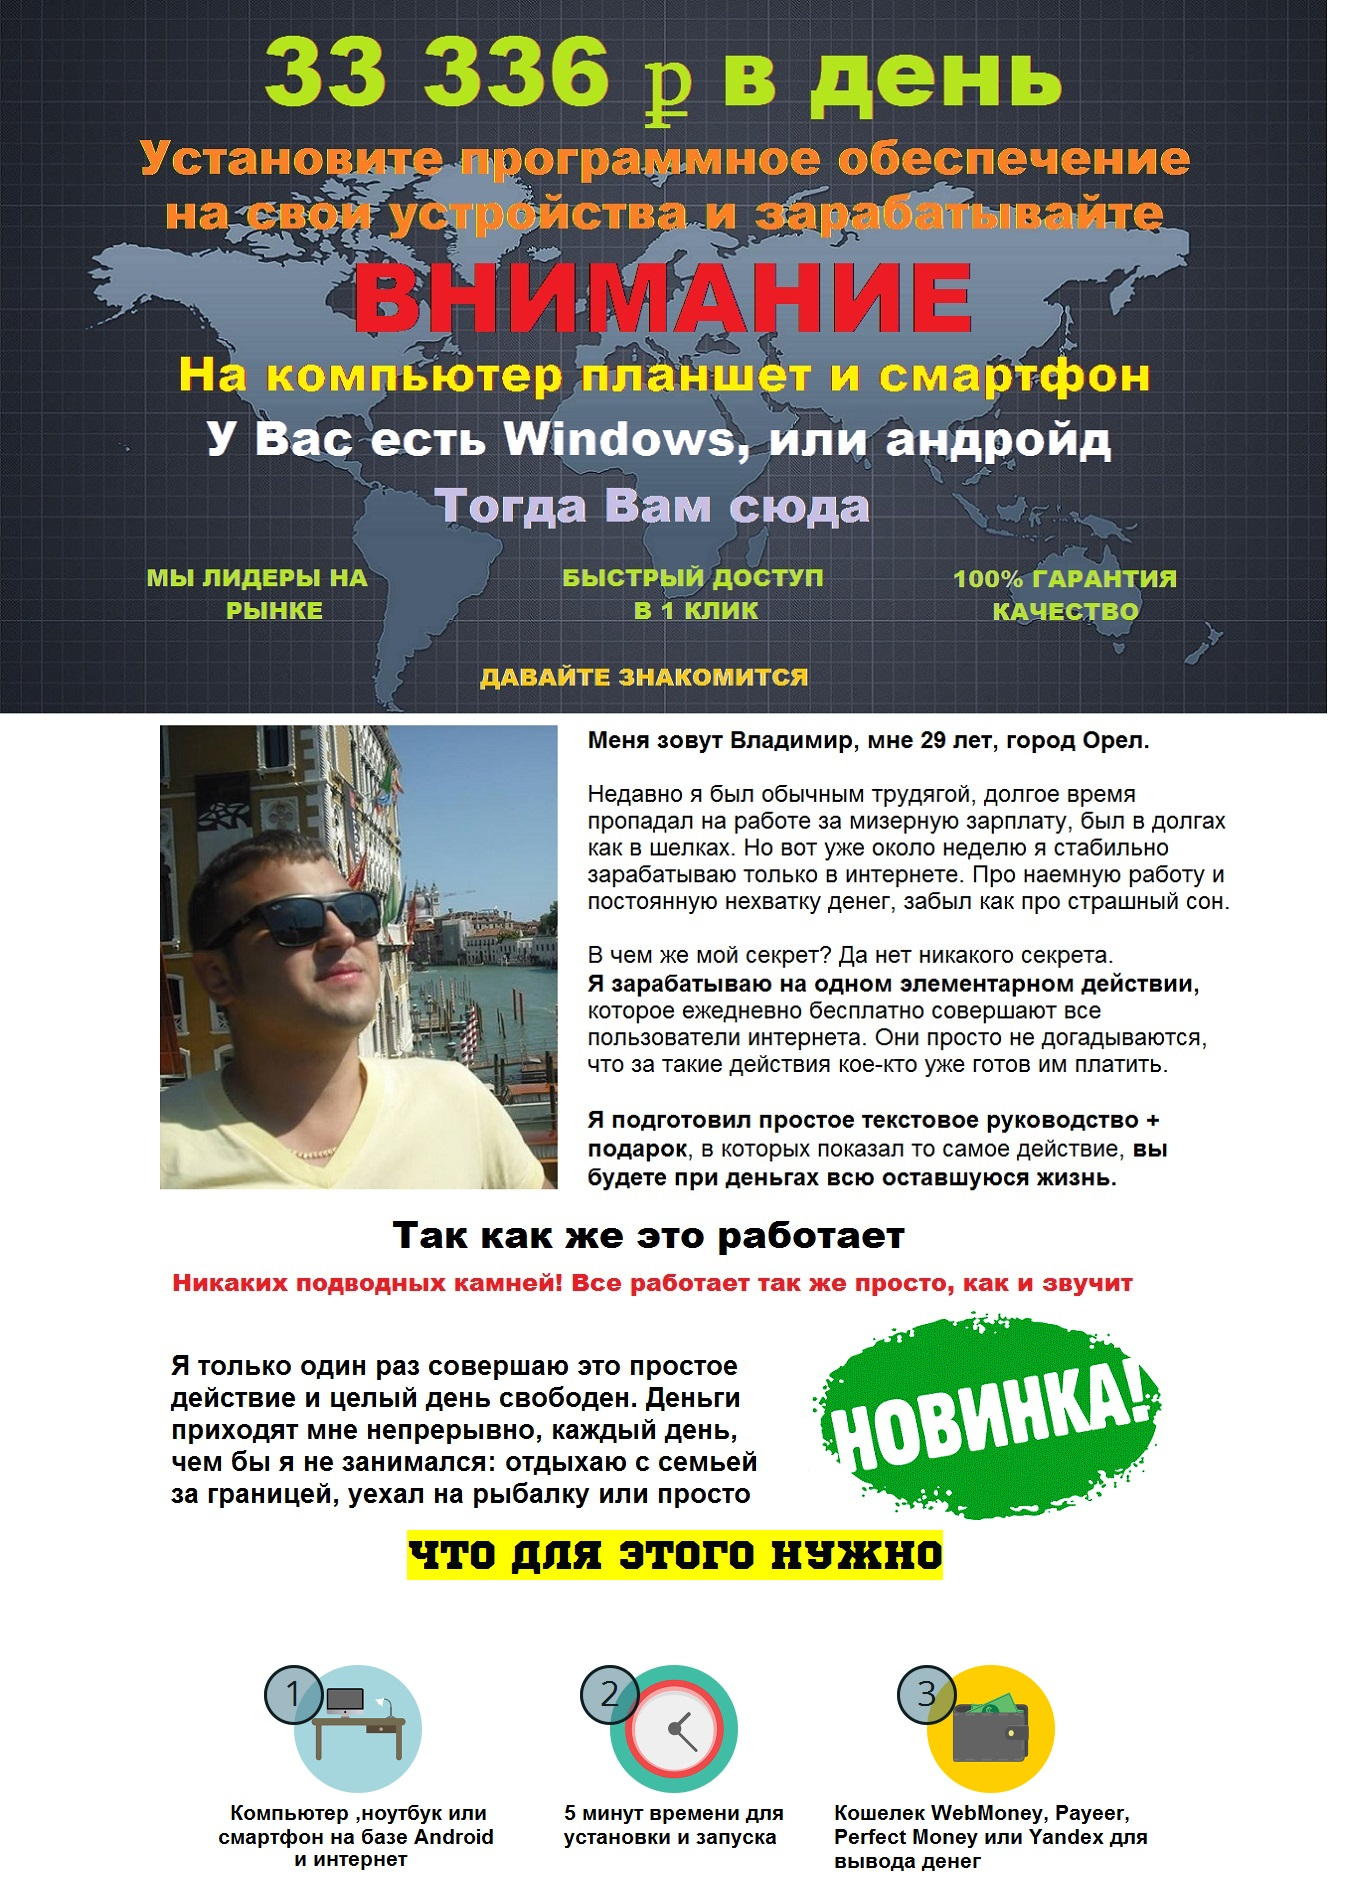 http://sofft.justclick.ru/media/content/sofft/eer